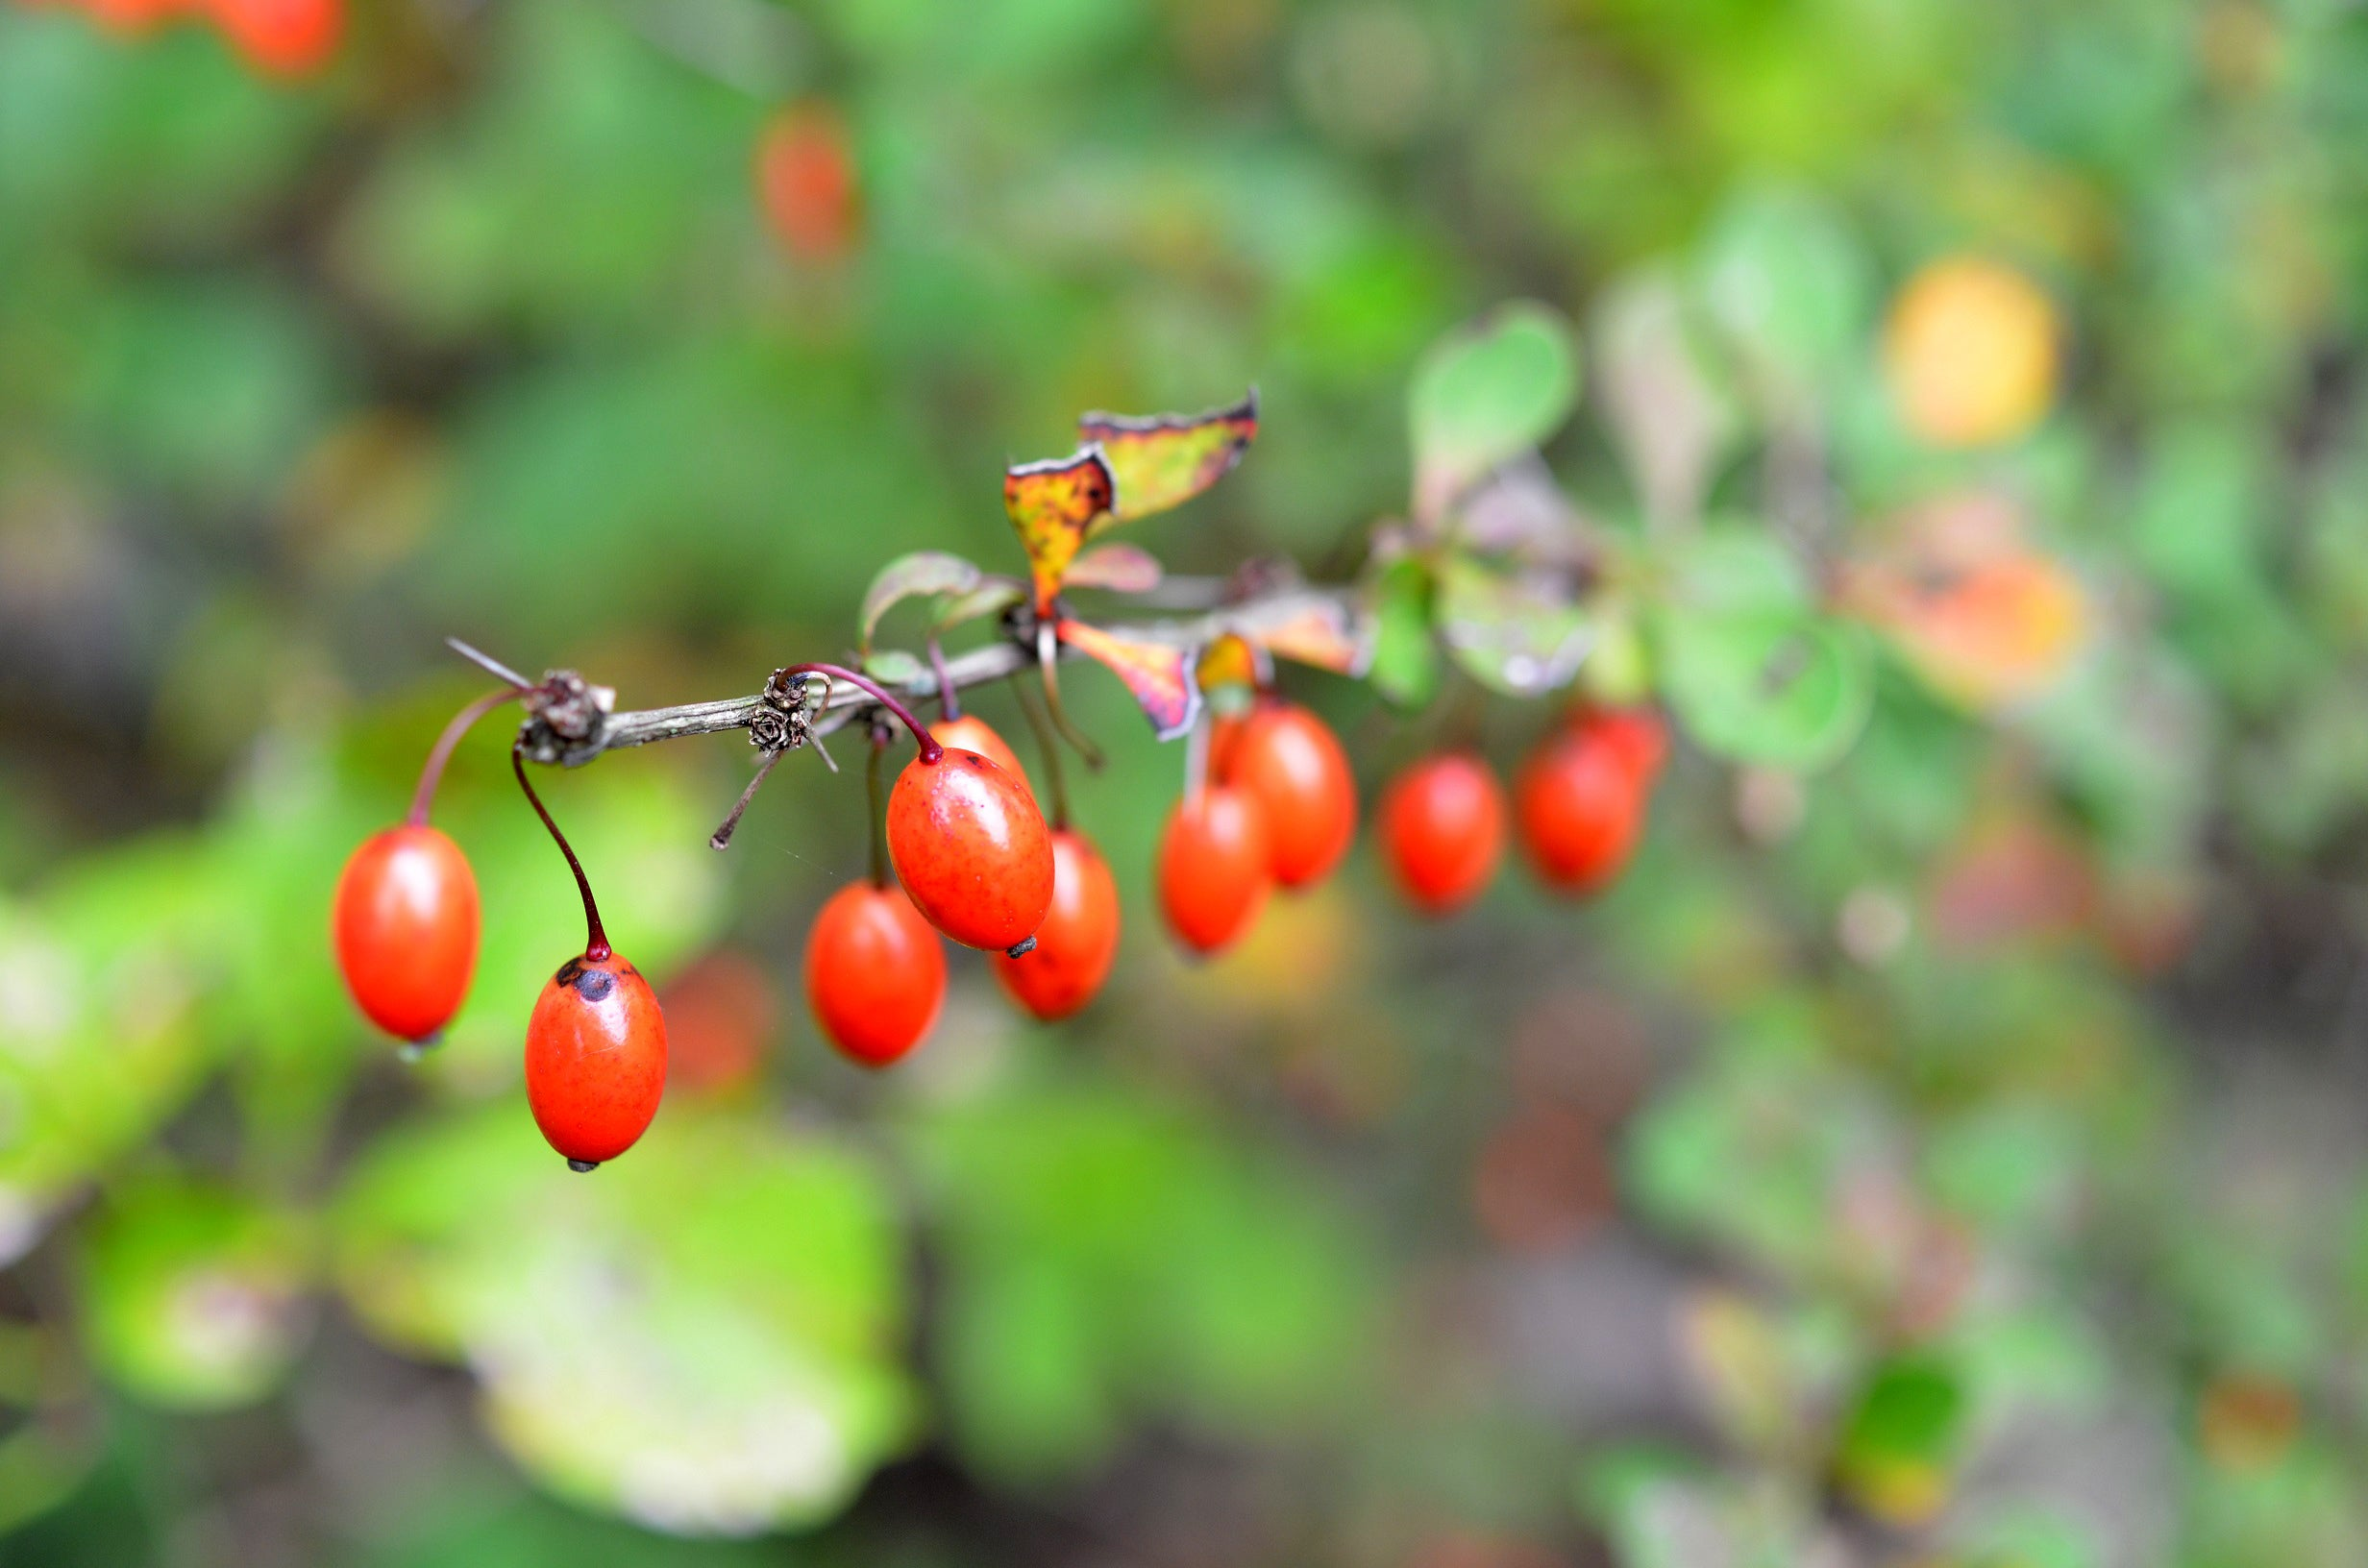 Survival Skills: How to Identify Toxic and Edible Red Berries